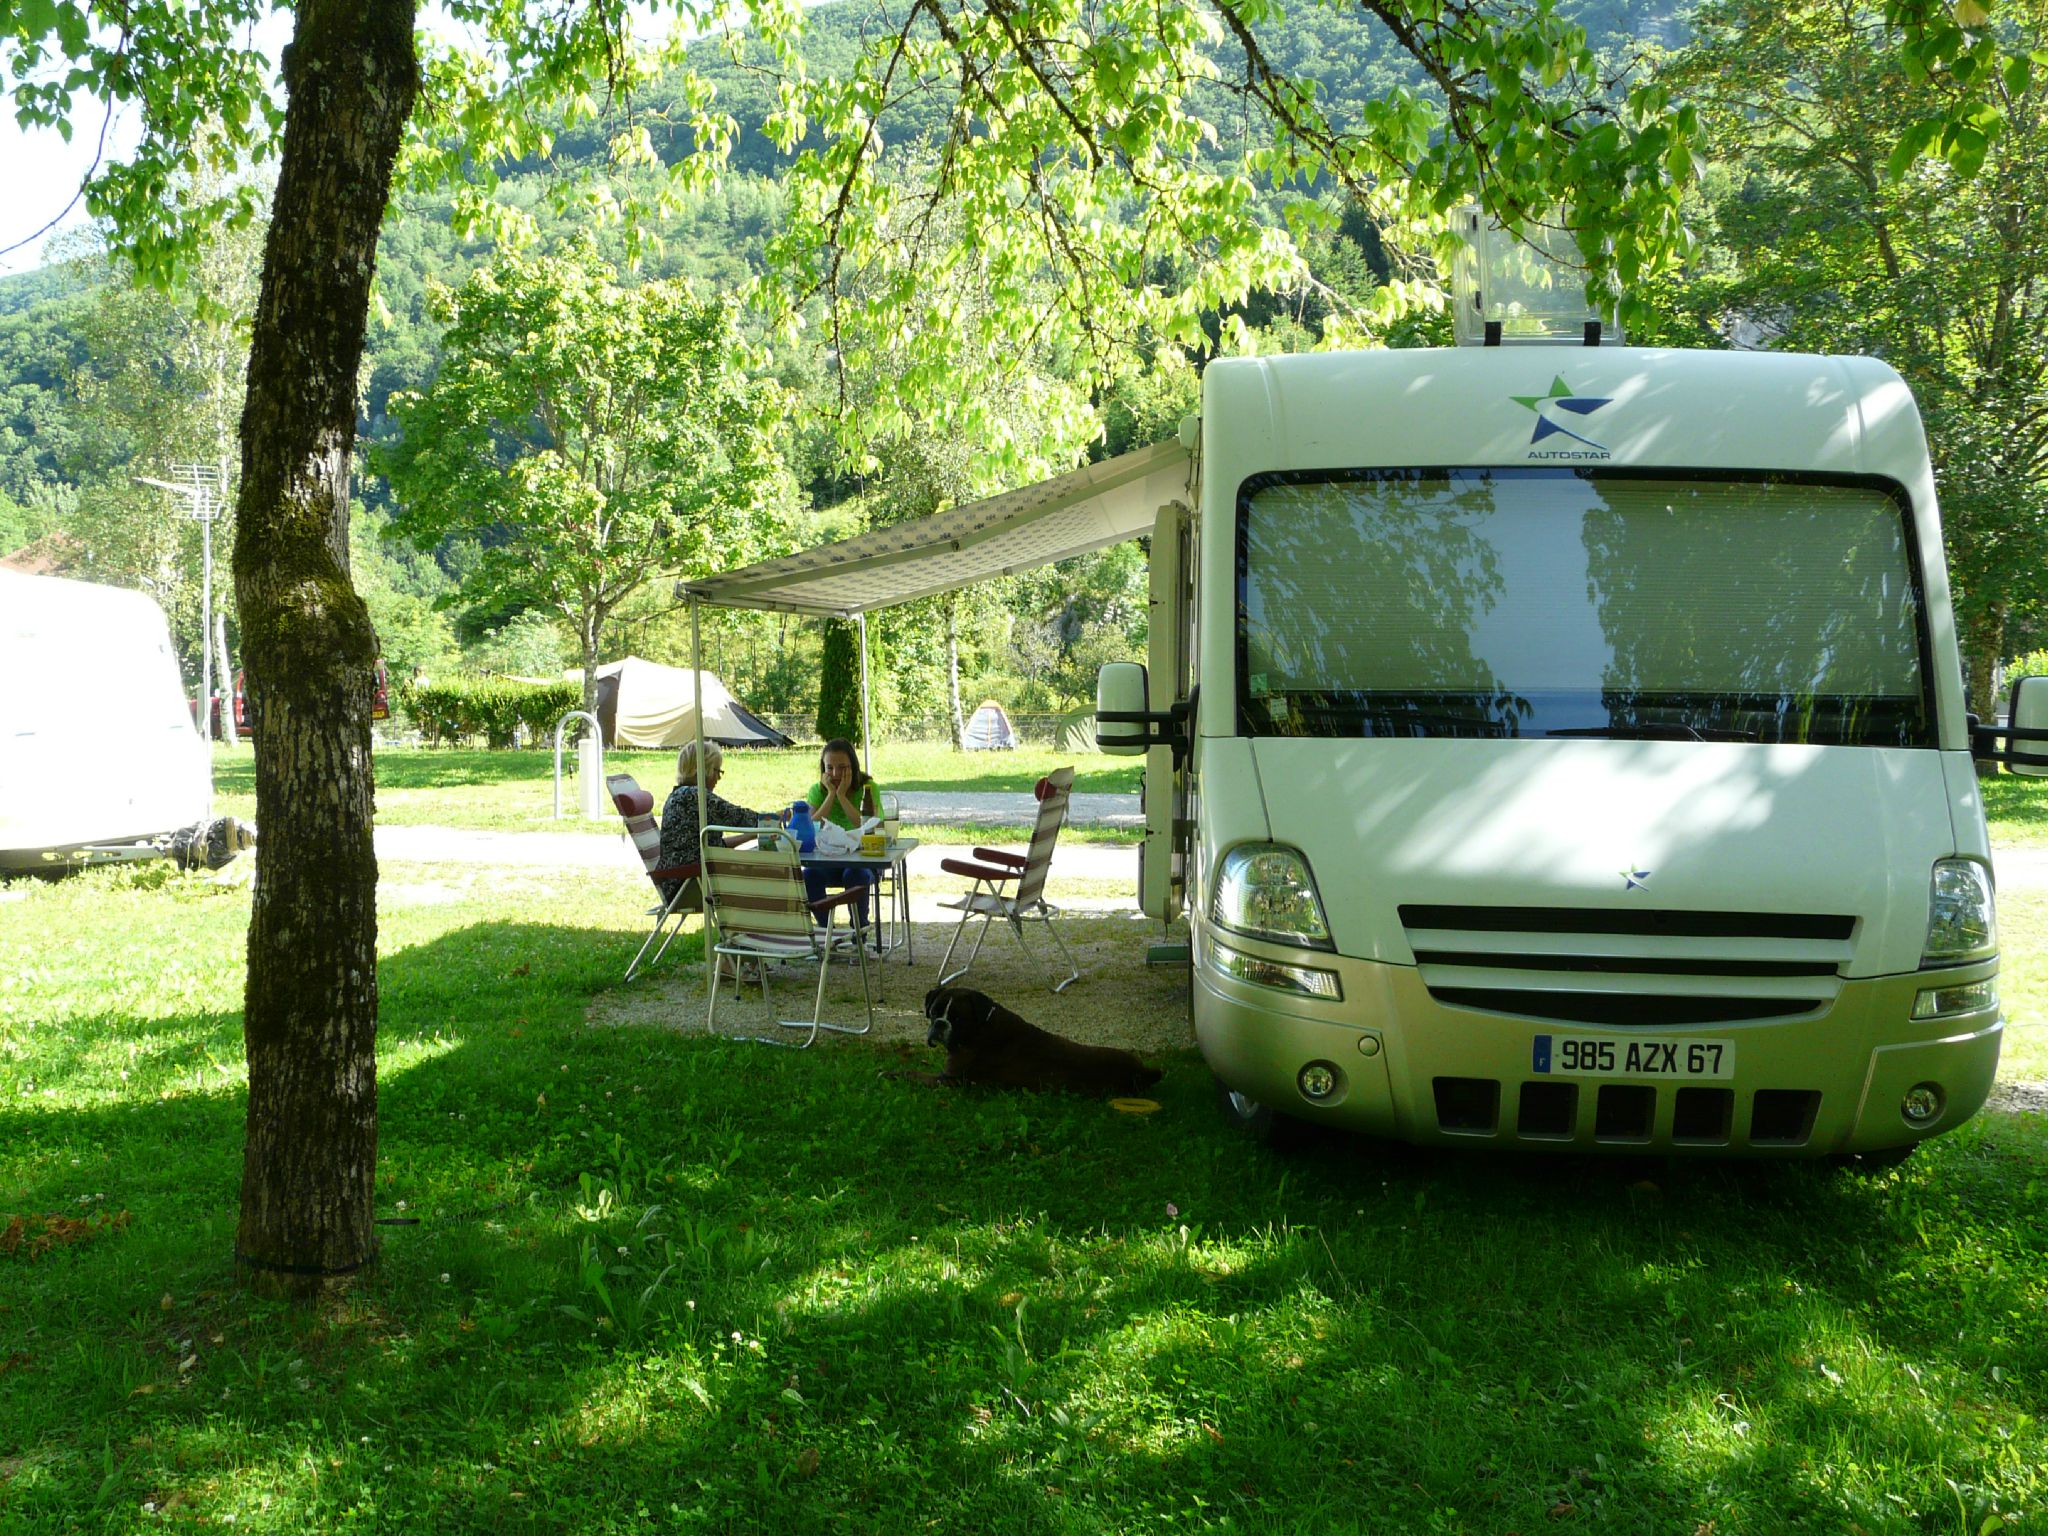 03-Lods-Camping (4)